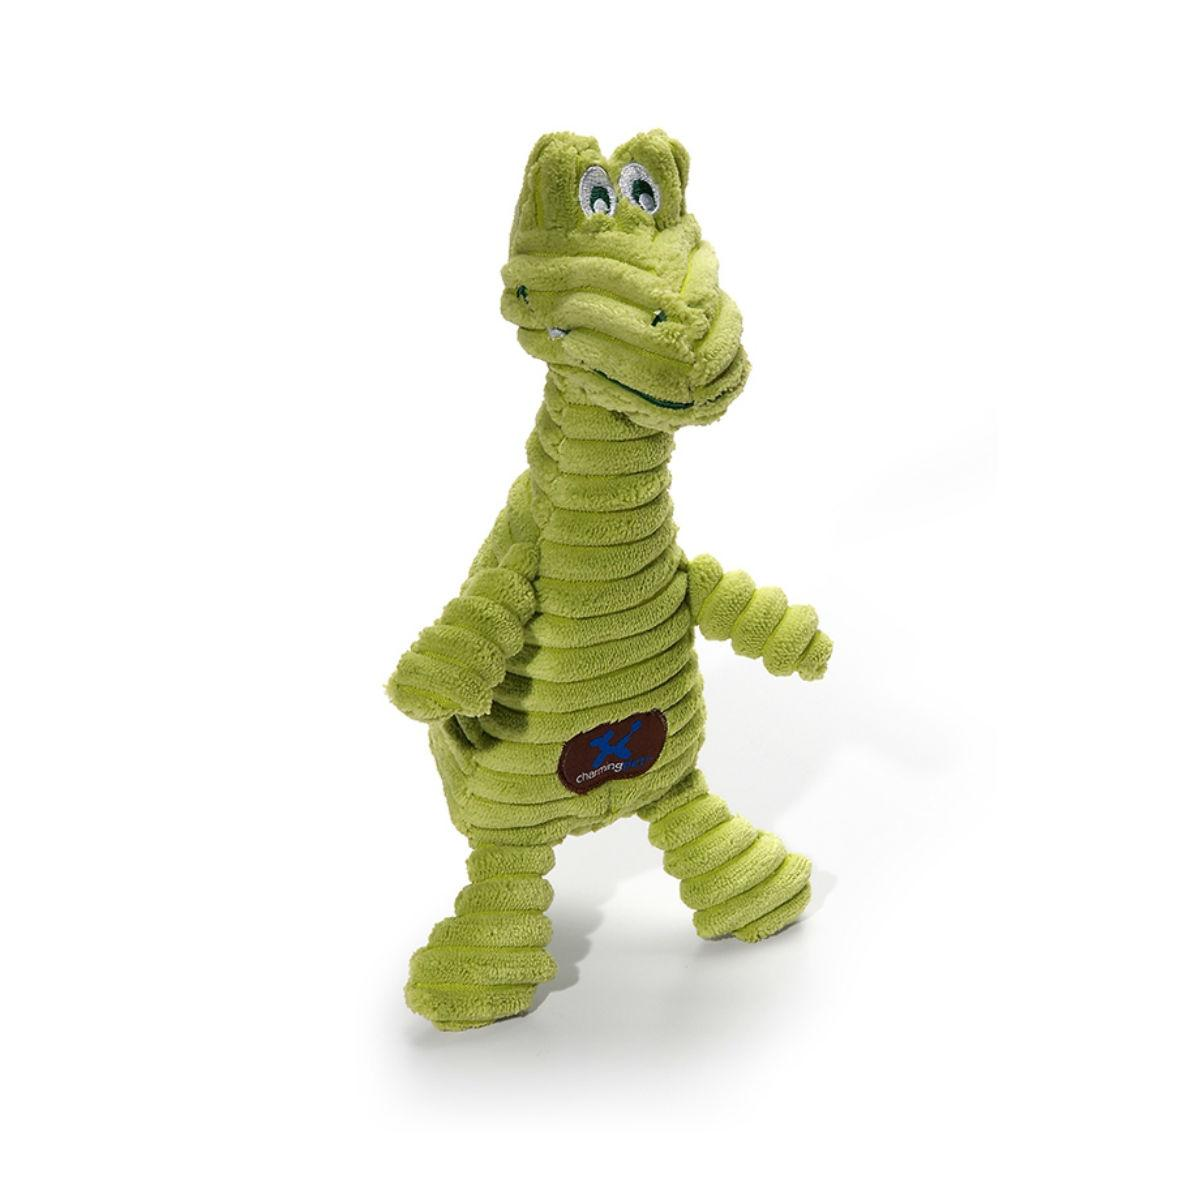 Charming Squeakin' Squiggles Dog Toy - Gator